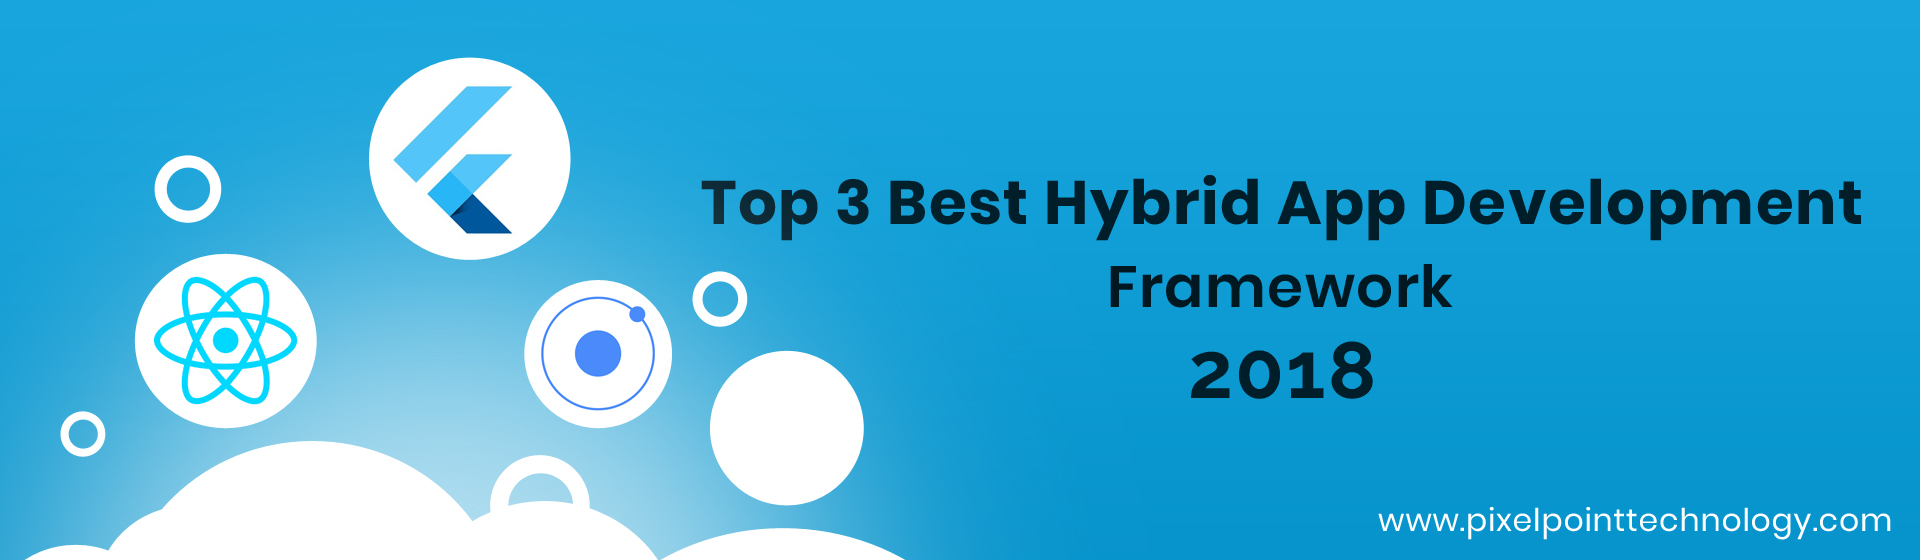 best hybrid app development framework